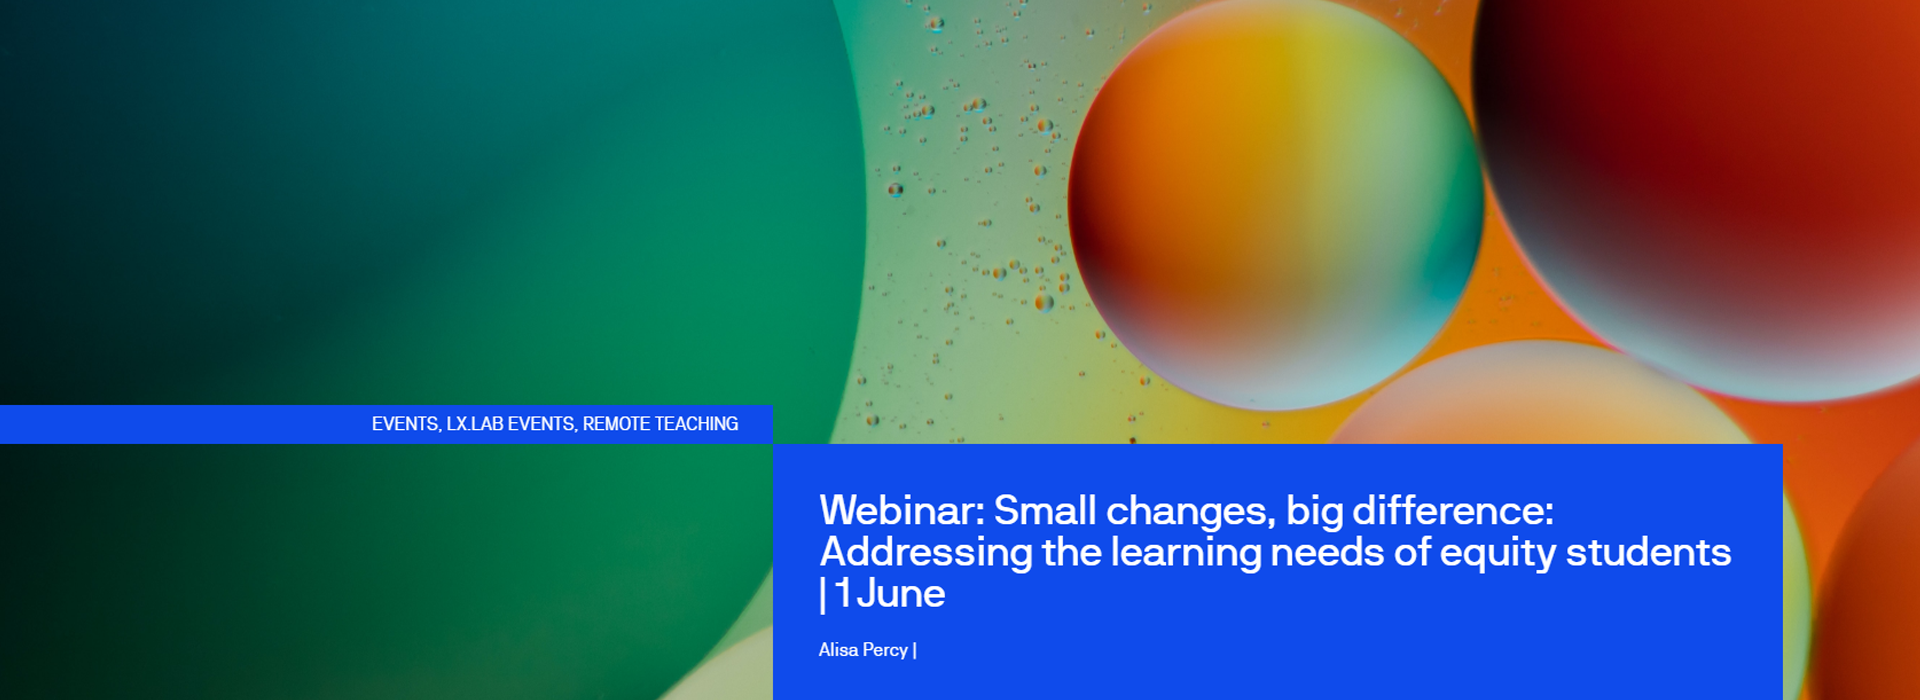 Header image of abstract bubbles